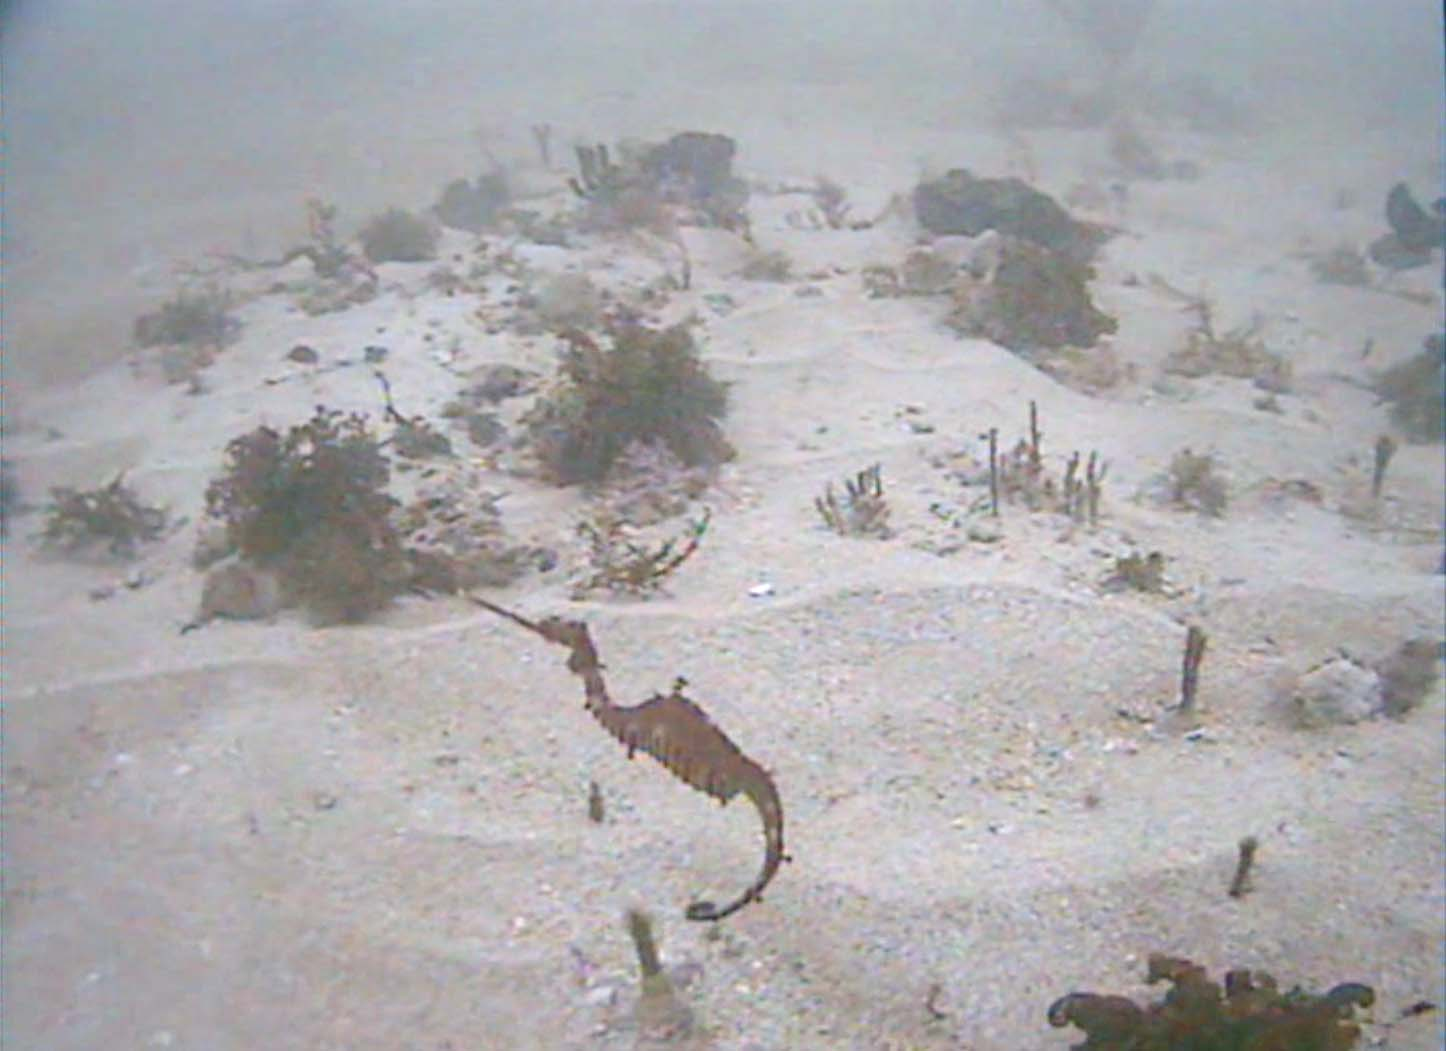 Red seadragon caught on camera in the wild for first time